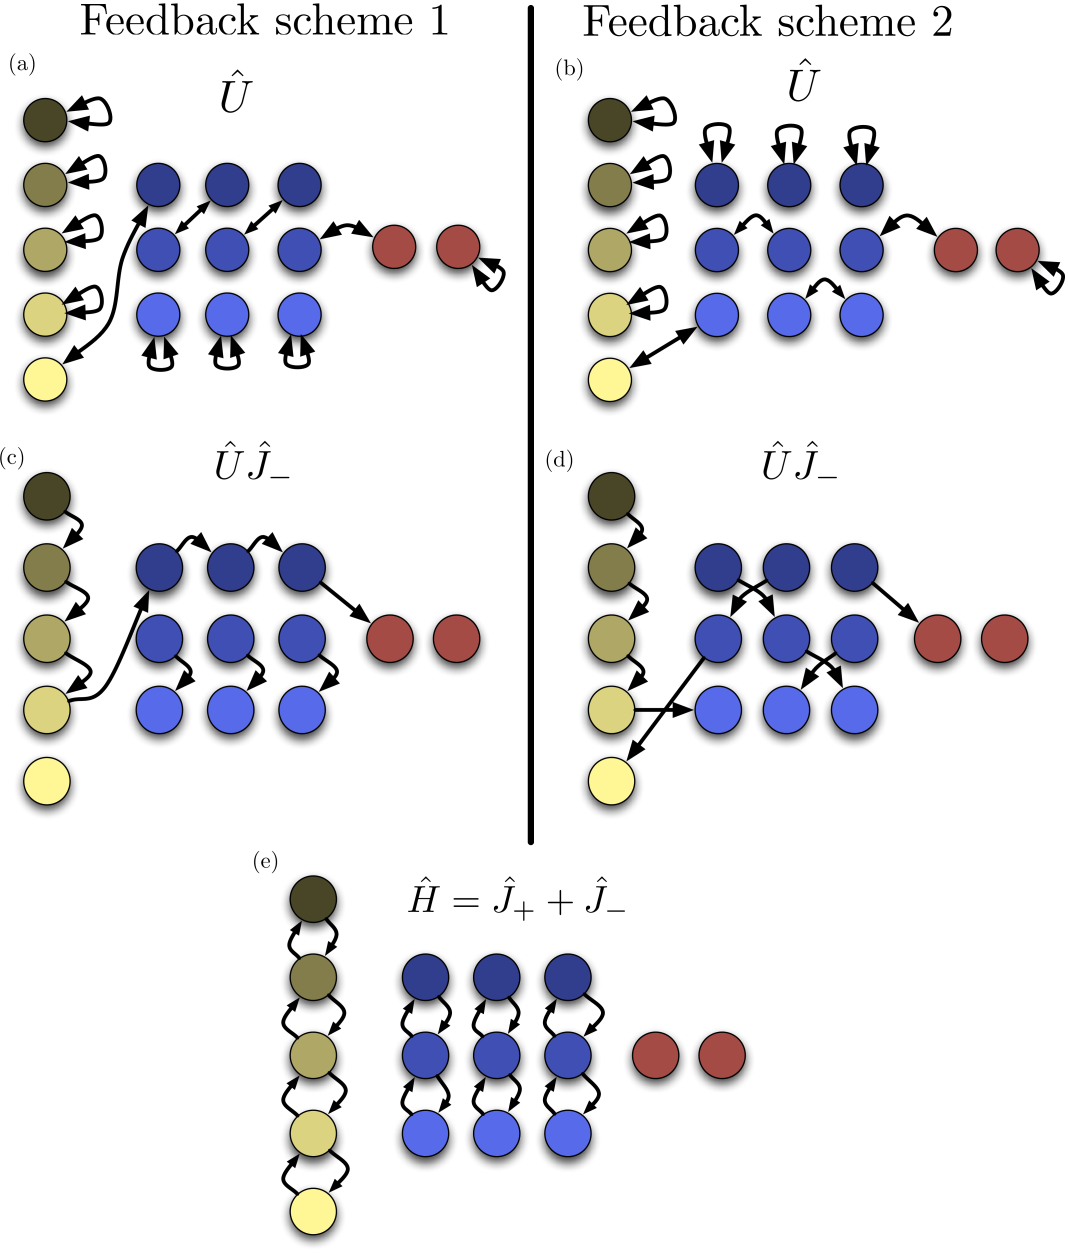 Schematics of two different feedback schemes. Diagrams (a) and (b) show the connections between states induced by